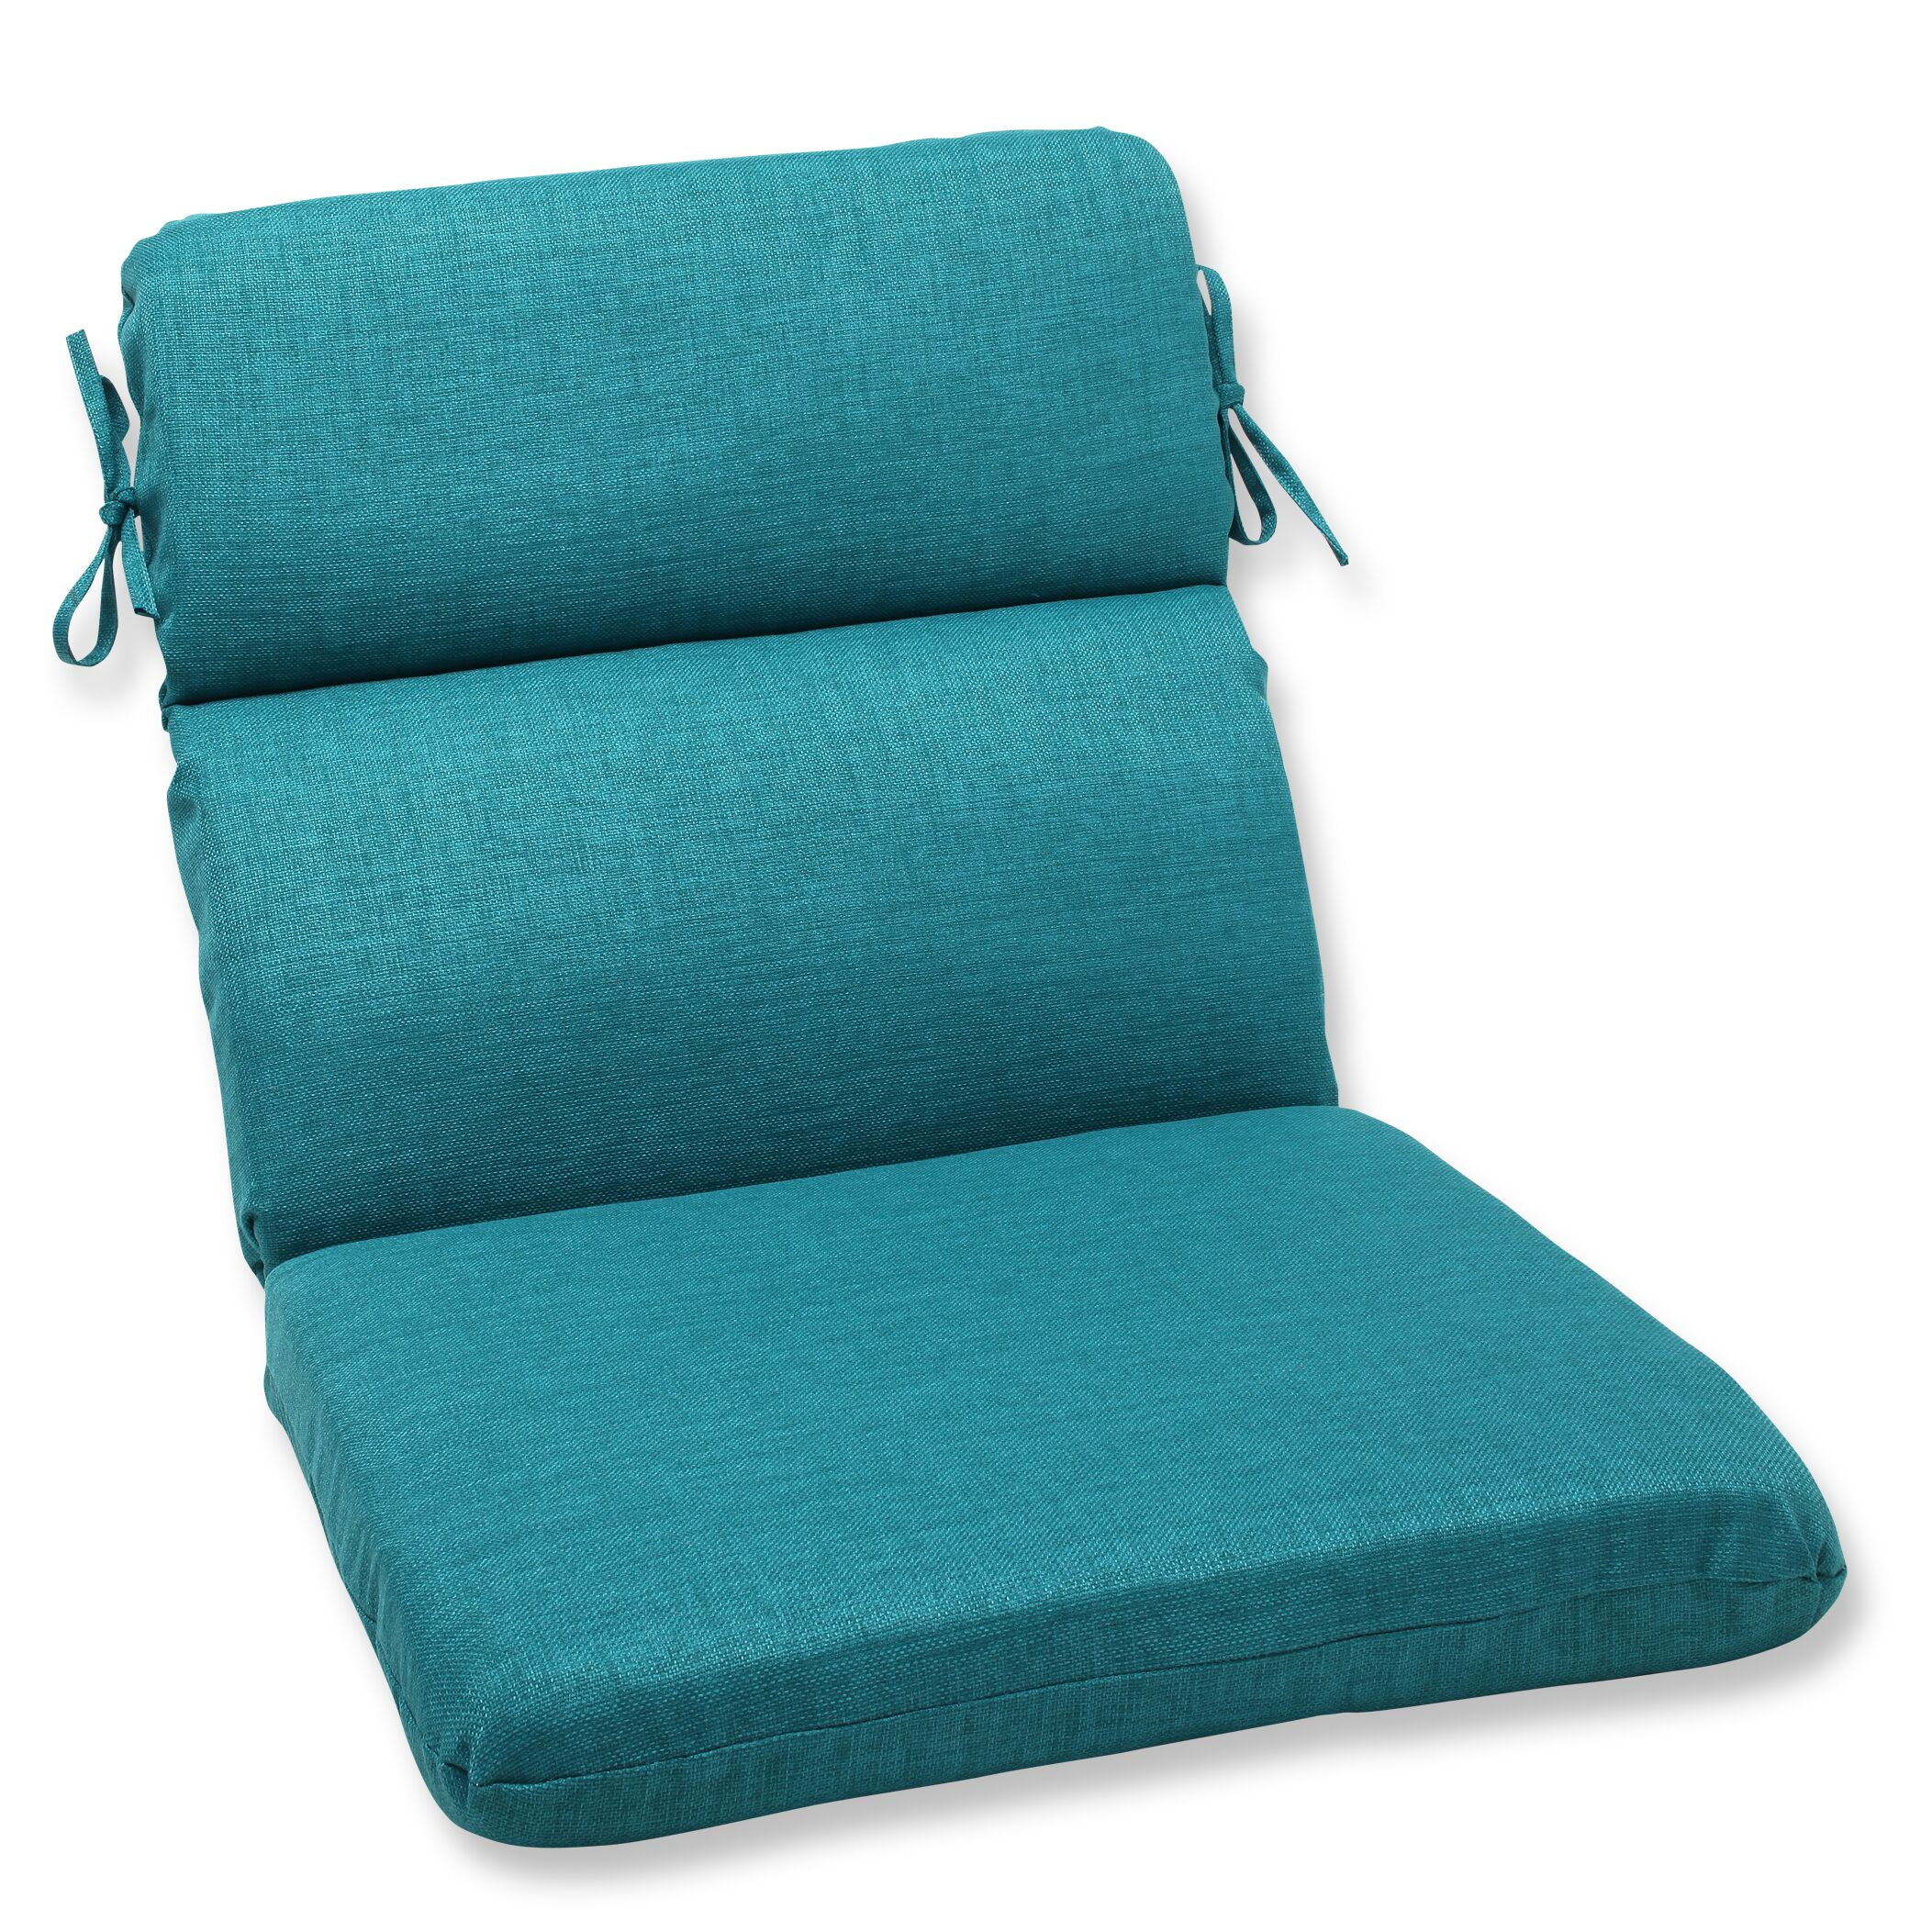 Rave Indoor/Outdoor Lounge Chair Cushion Fabric: Teal